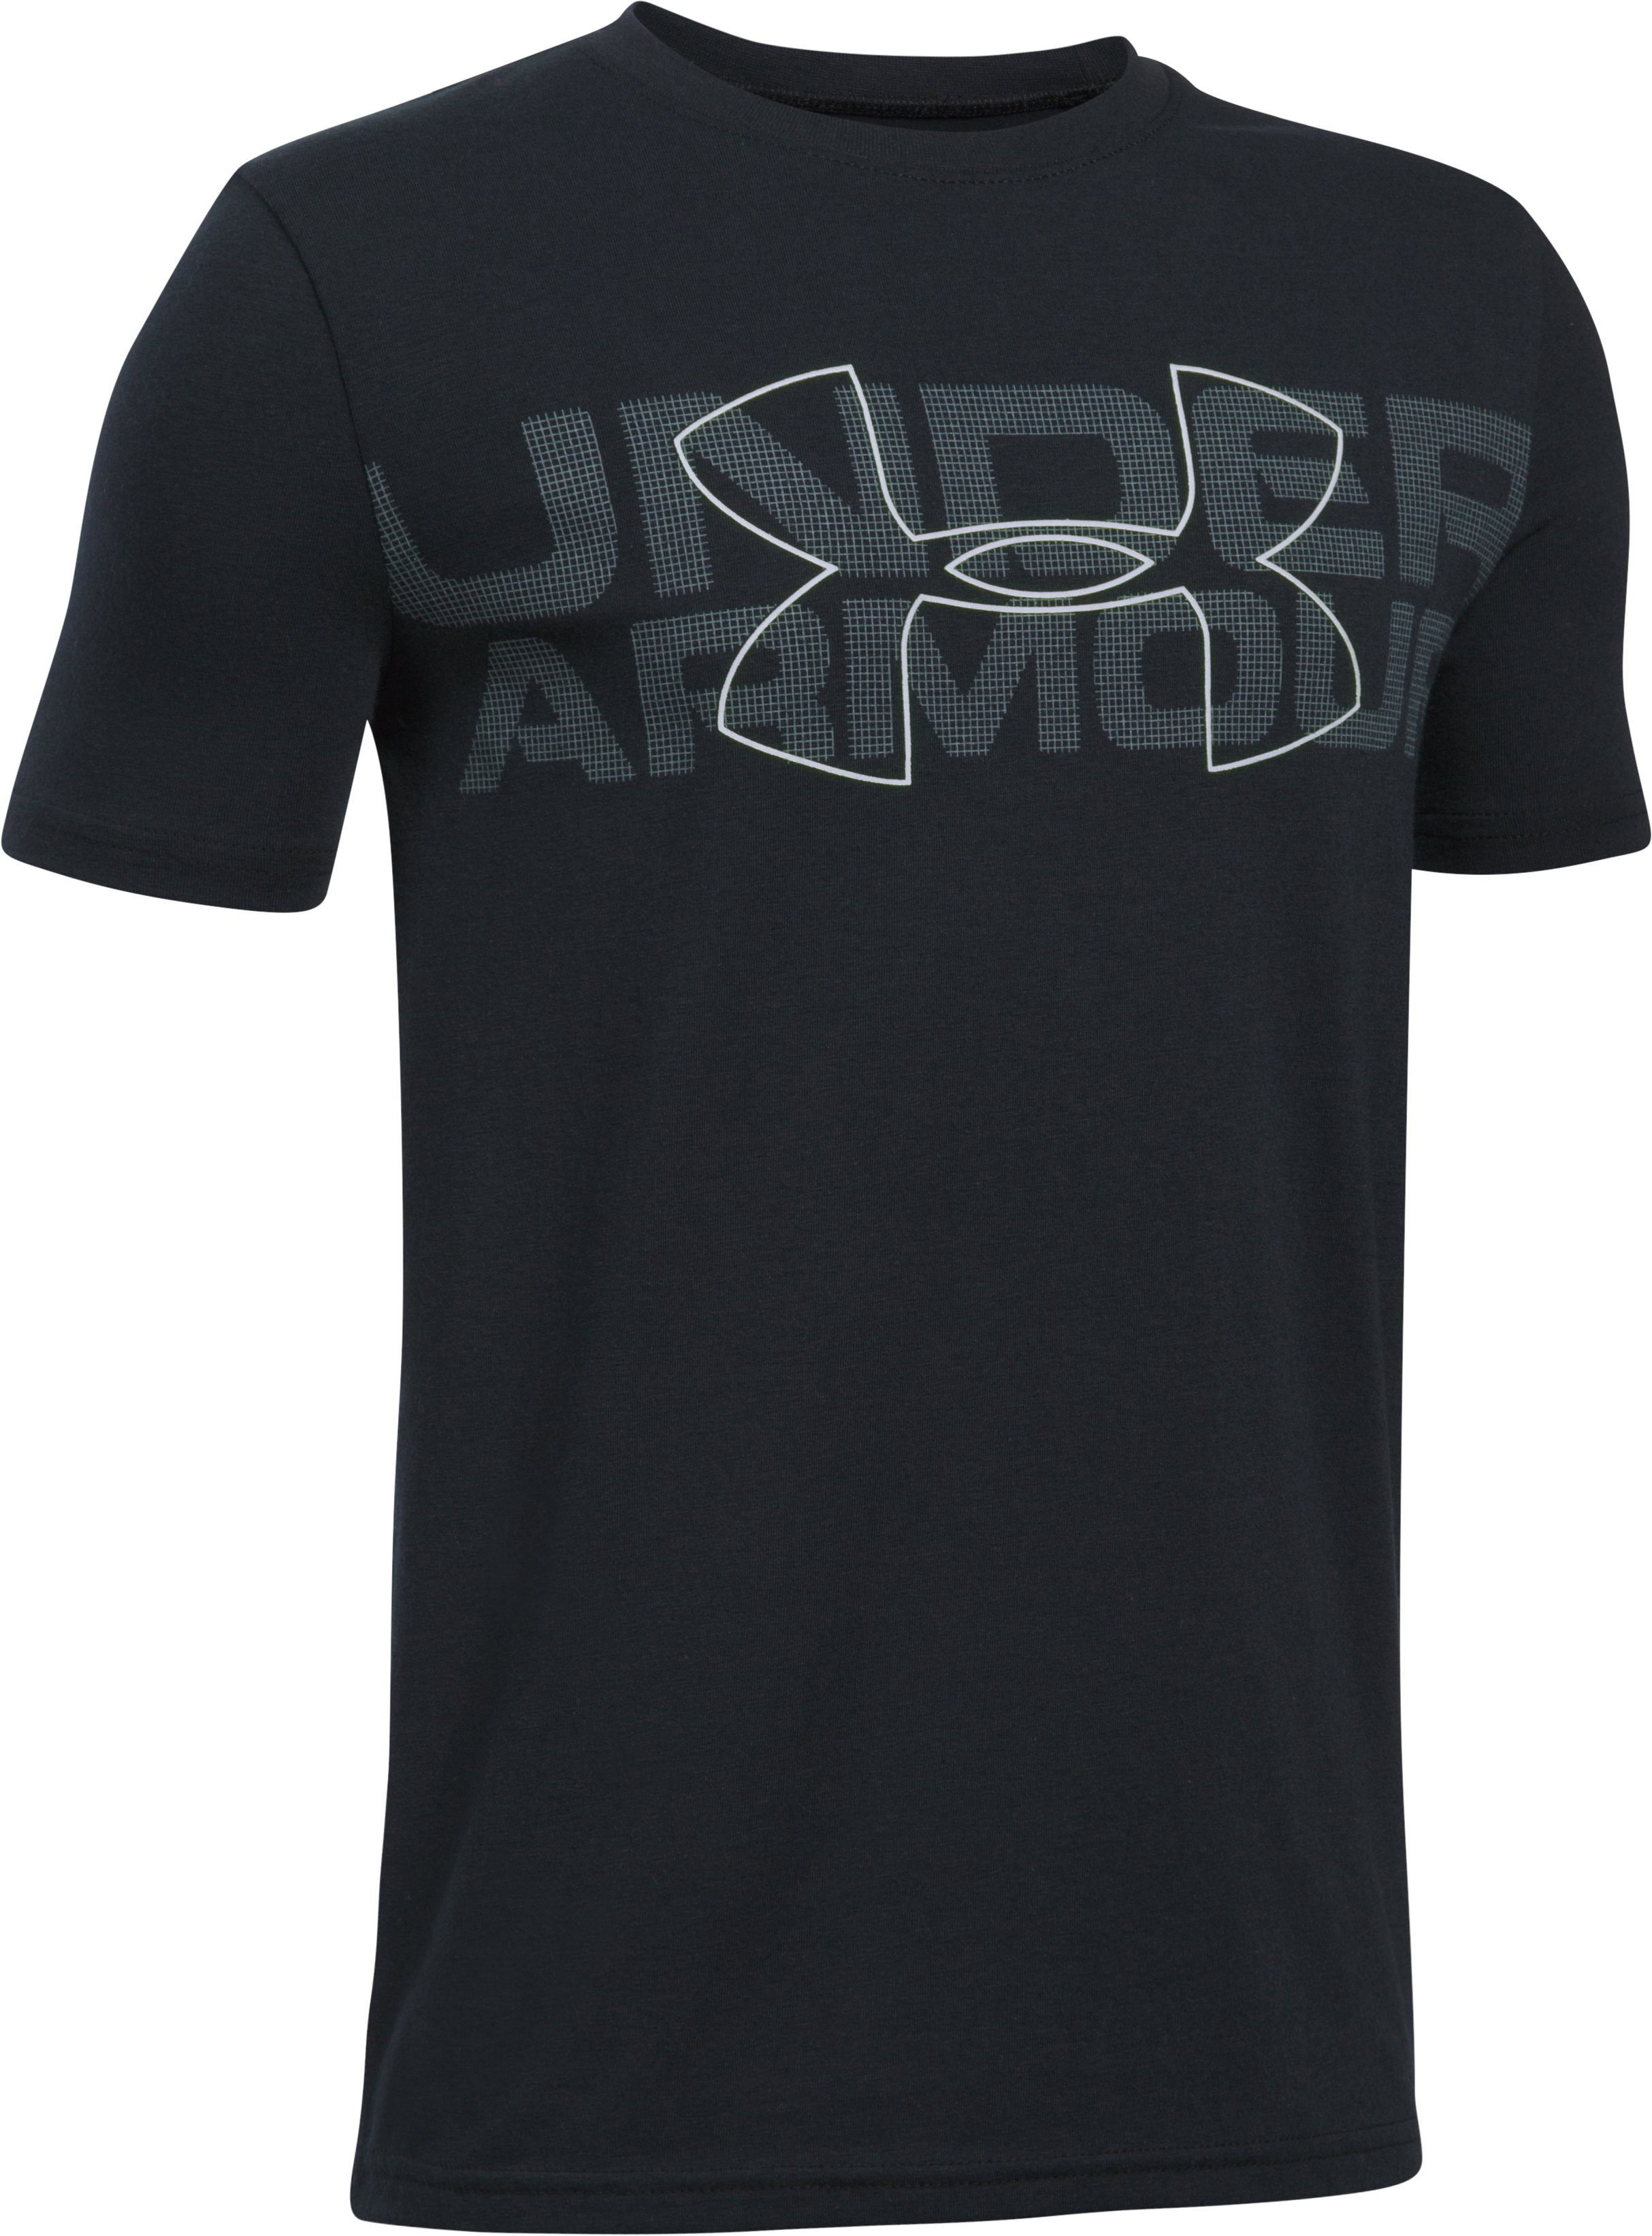 Boys' UA Duo Armour T-Shirt, Black